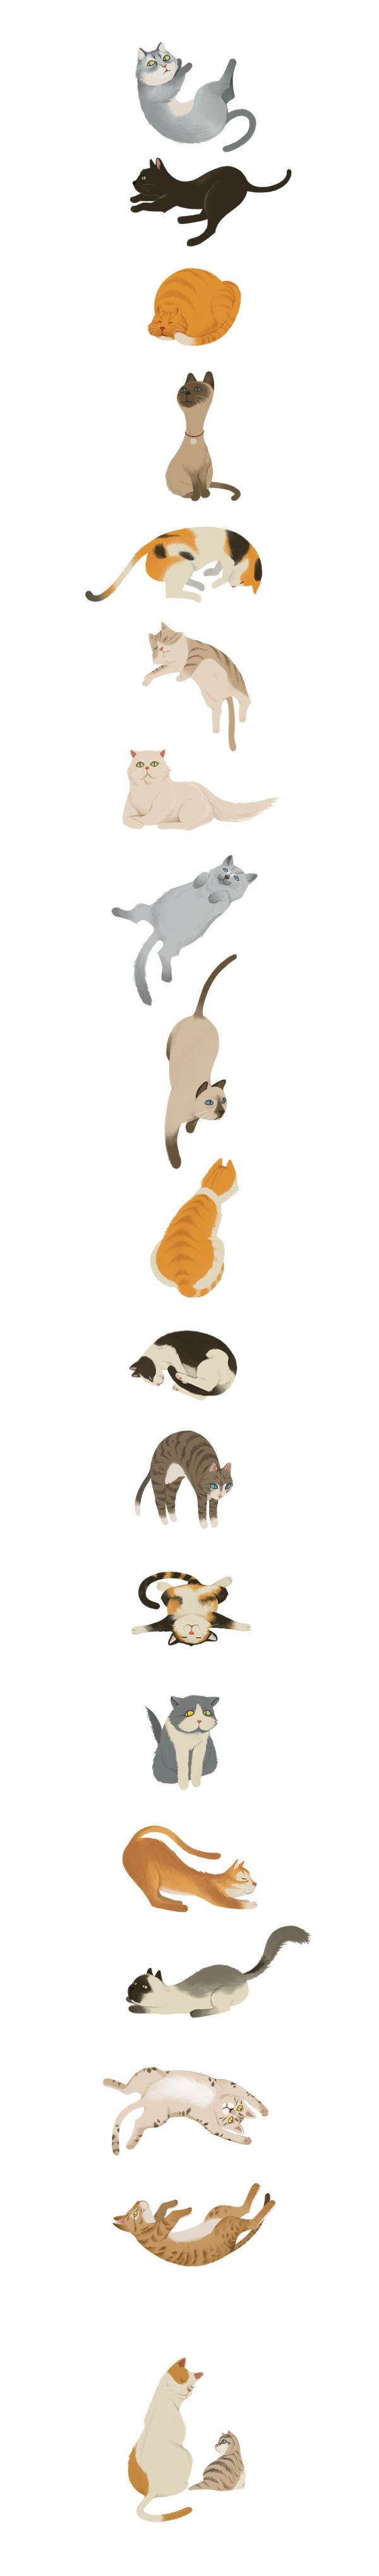 Cats on Illustration Served